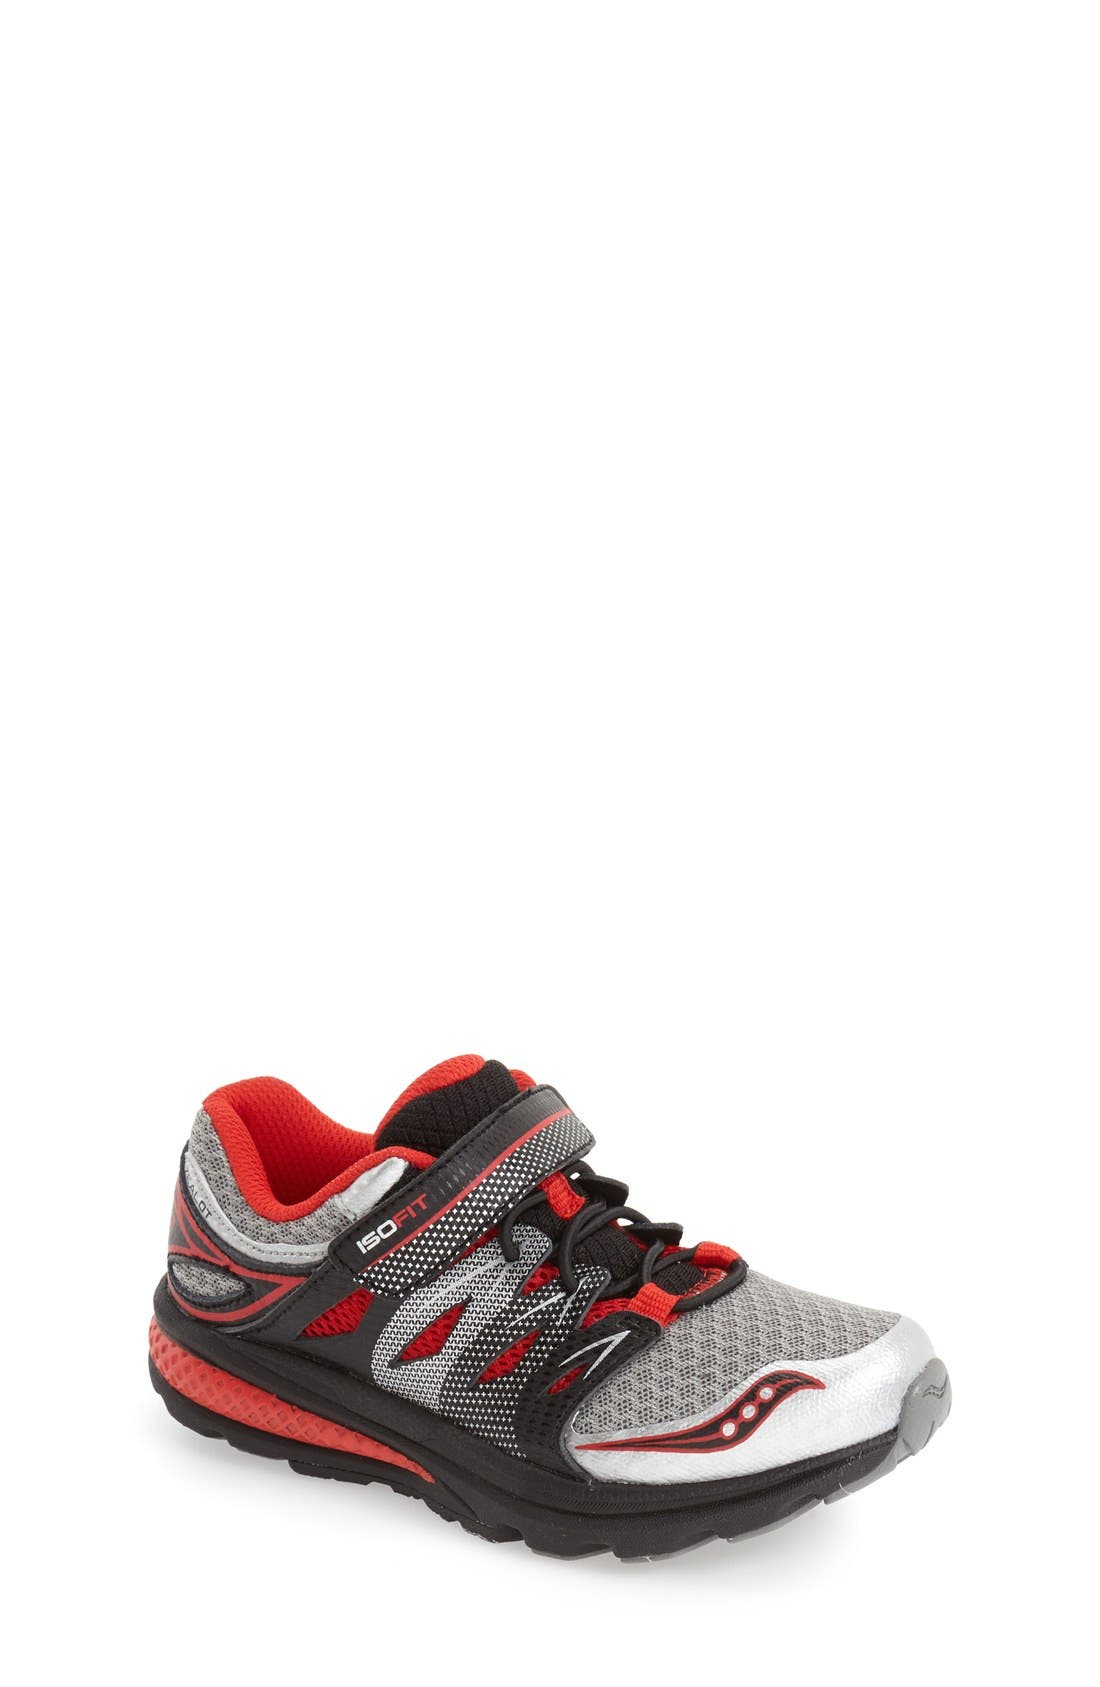 'Zealot 2 AC' Running Shoe,                         Main,                         color, Grey/ Red